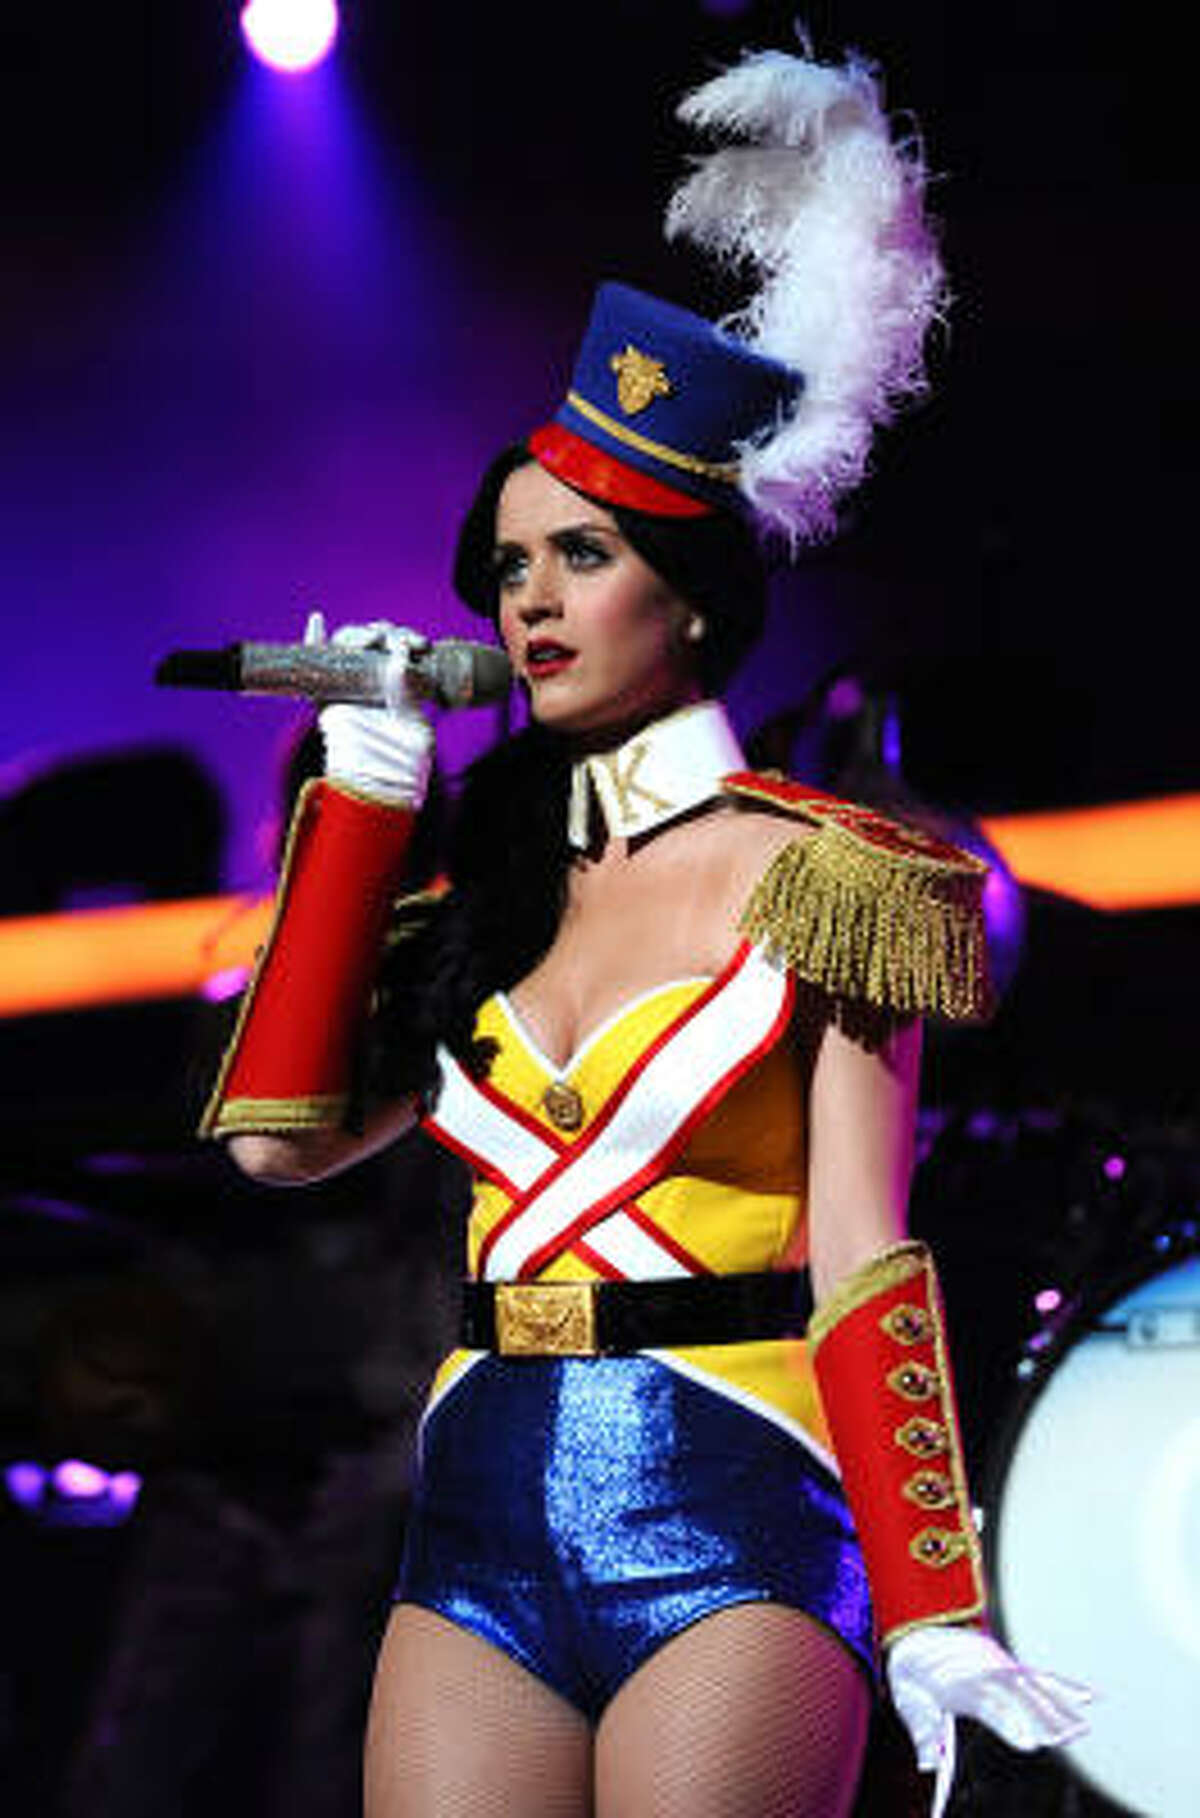 Favorite female artist Katy Perry